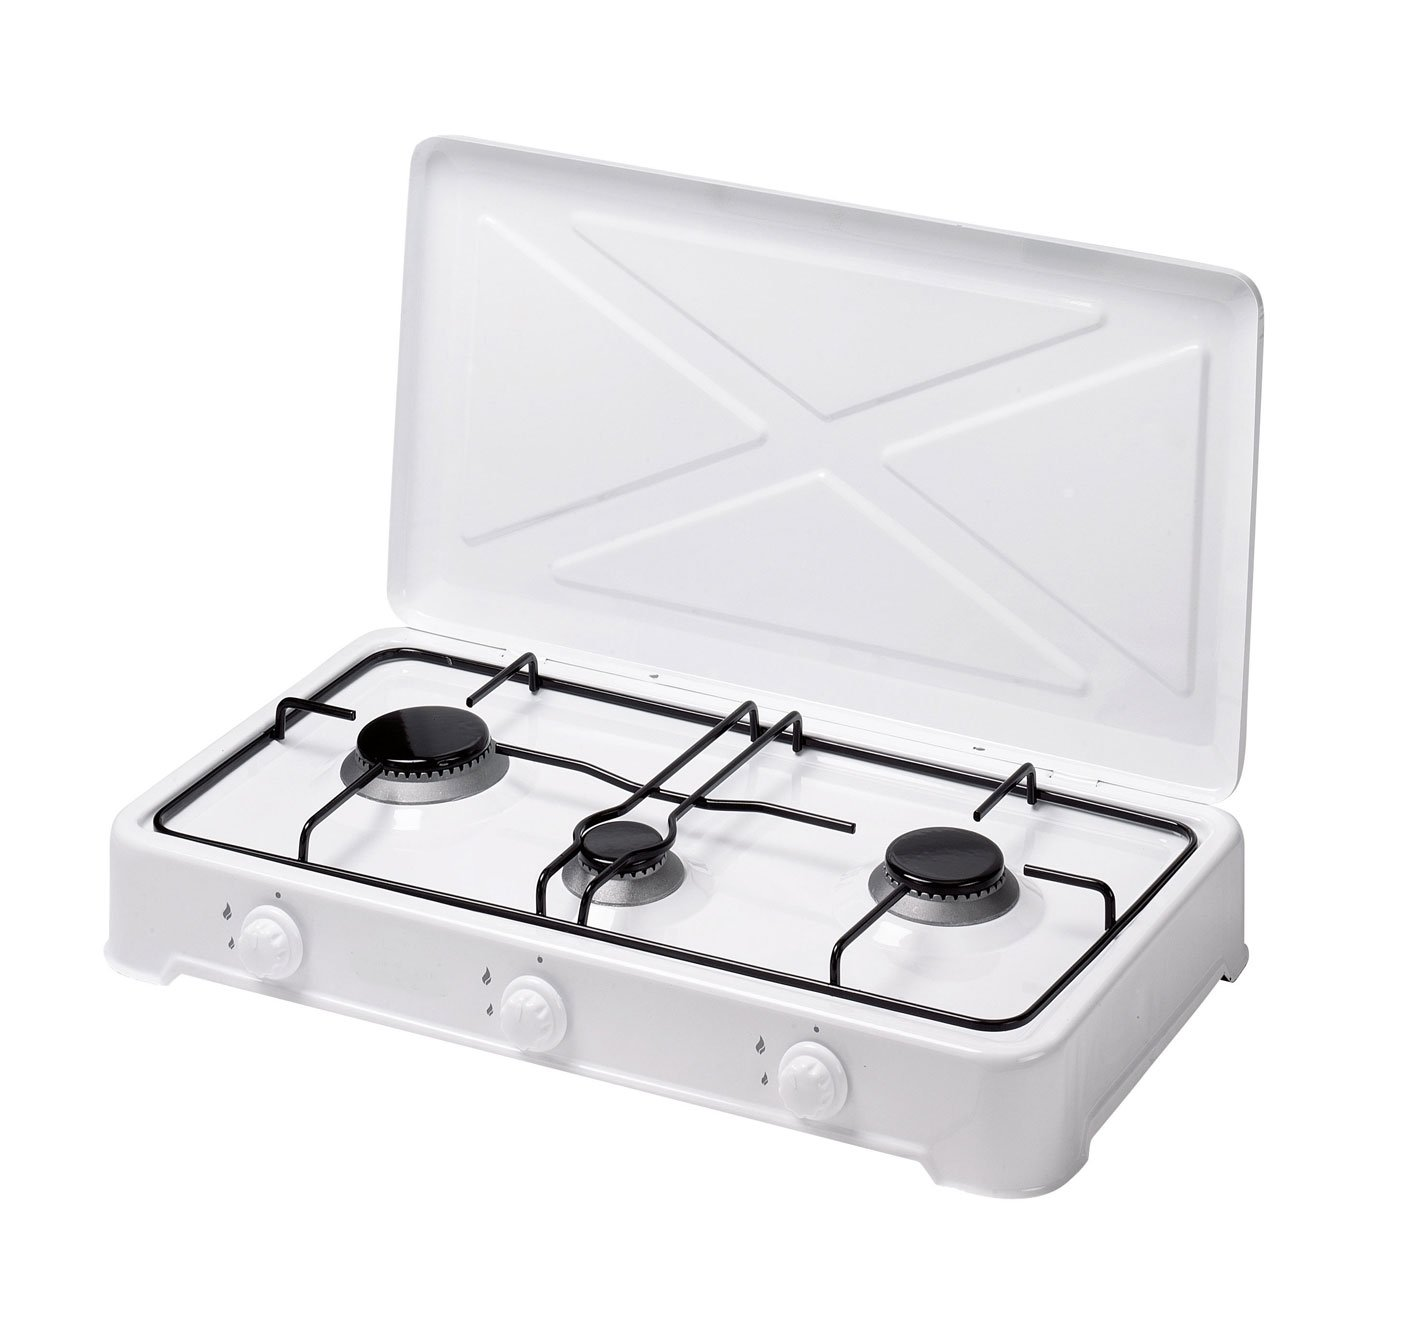 THREE BURNER TABLE TOP GAS COOKER